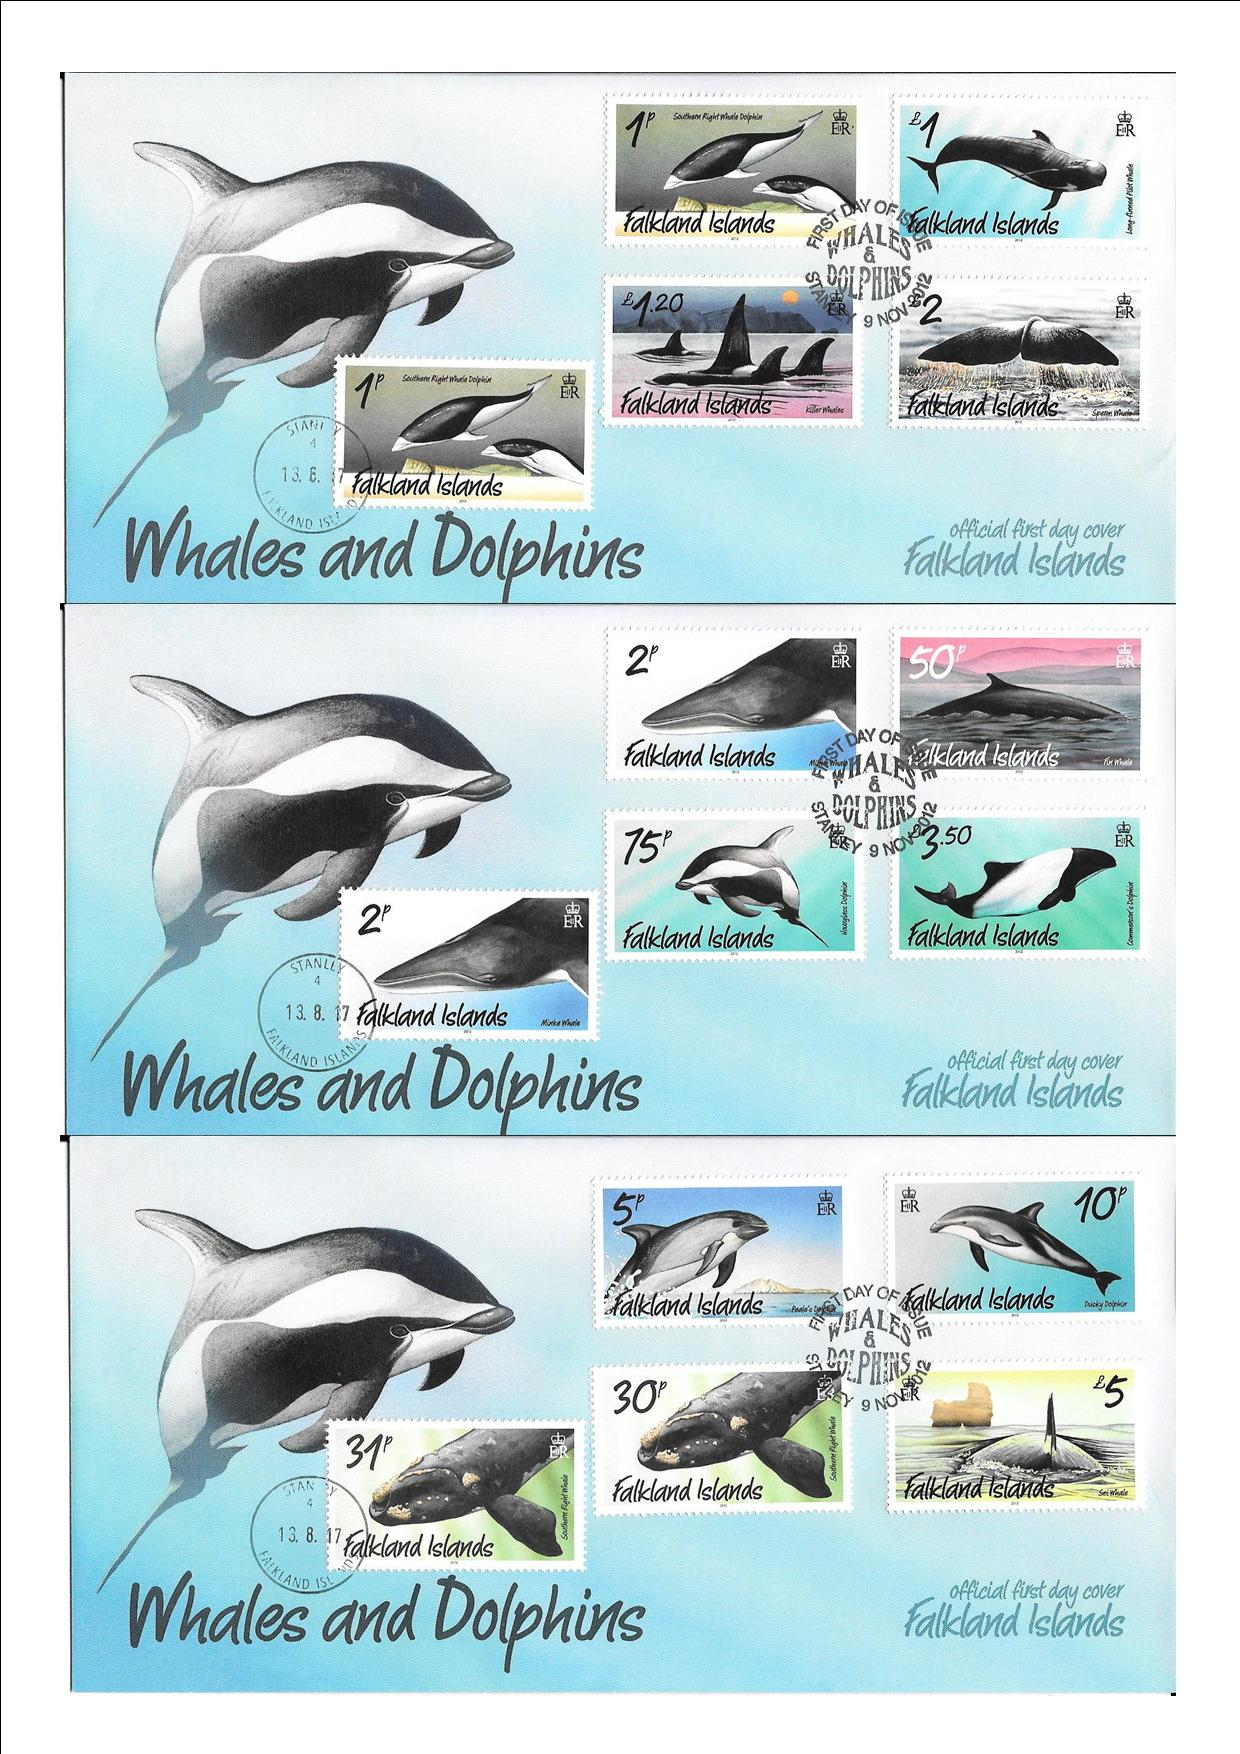 Whales and Dolphins Definitive Set Last Day Issue